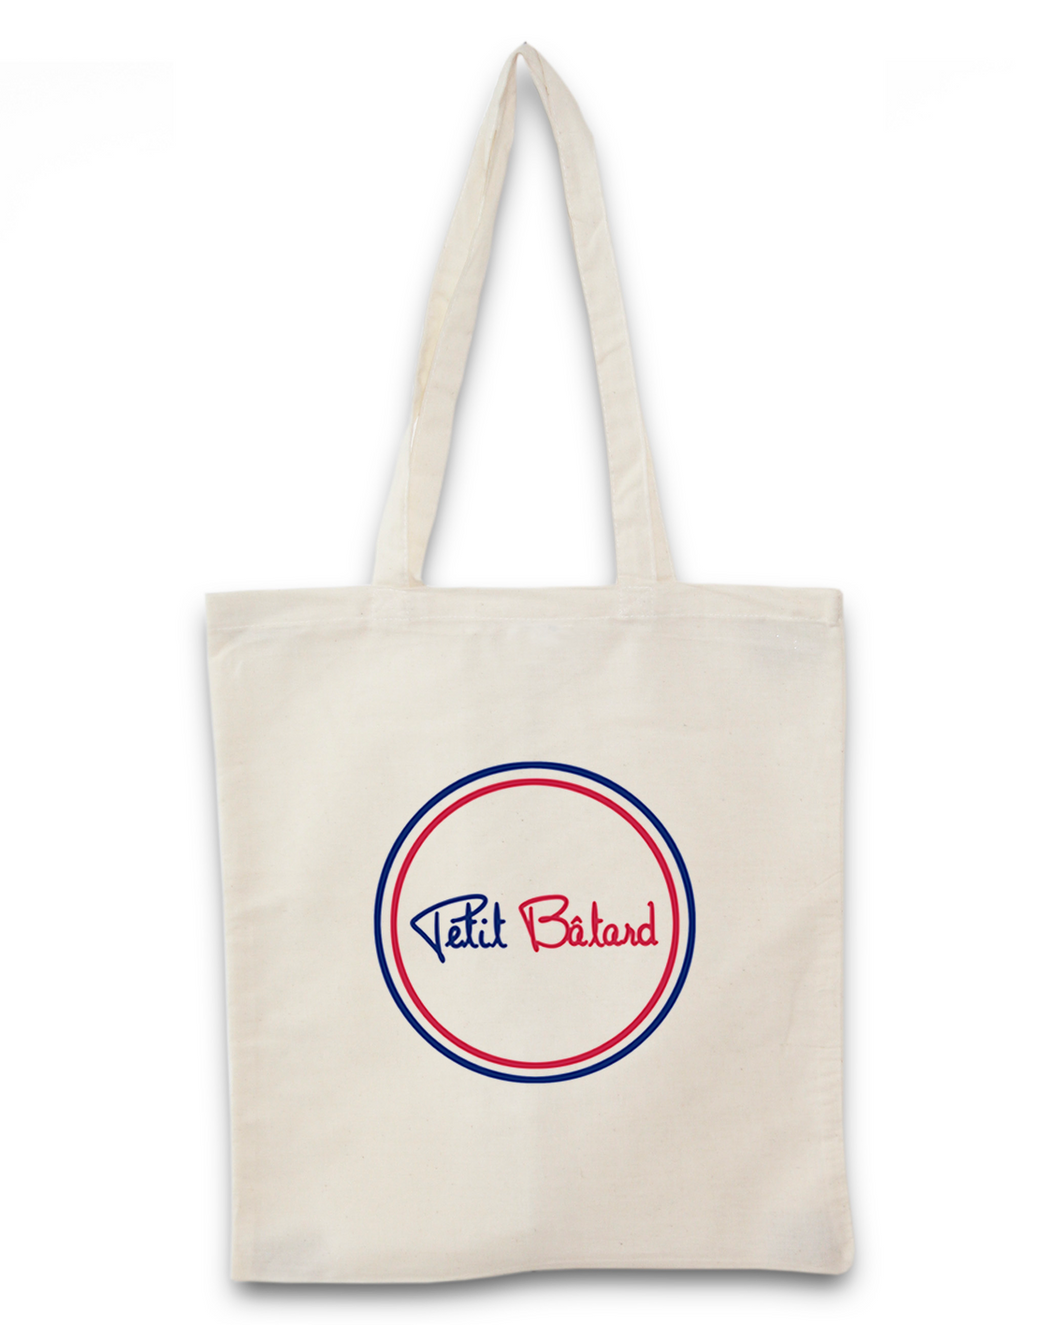 TOTE BAG PETIT BÂTARD CERCLE FRANCE